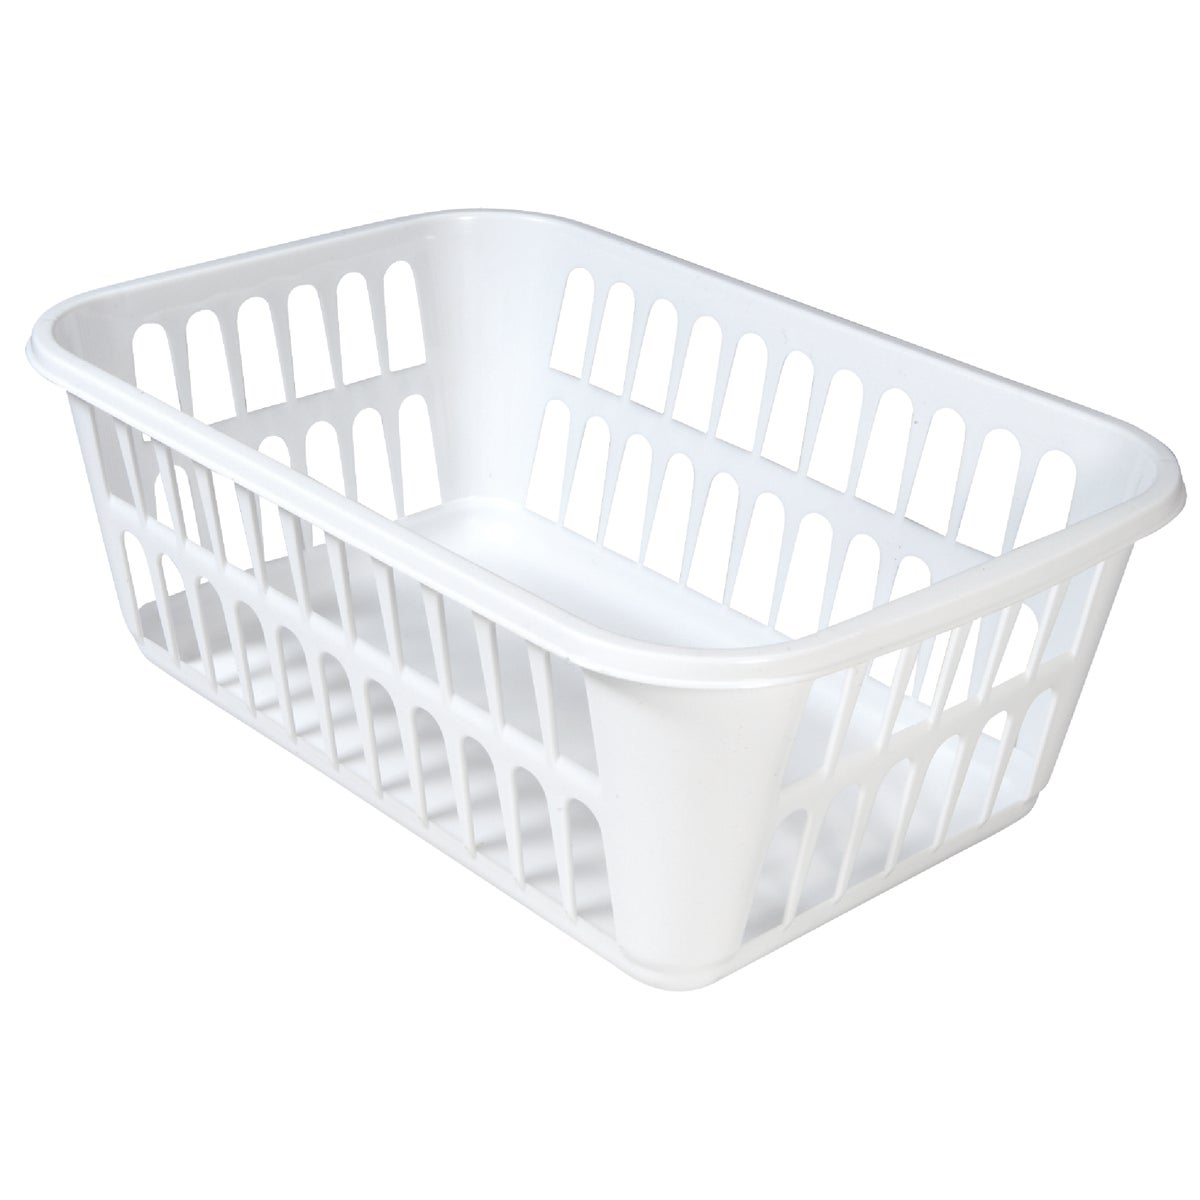 WHT STORAGE BASKET - 16088048 by Sterilite Corp